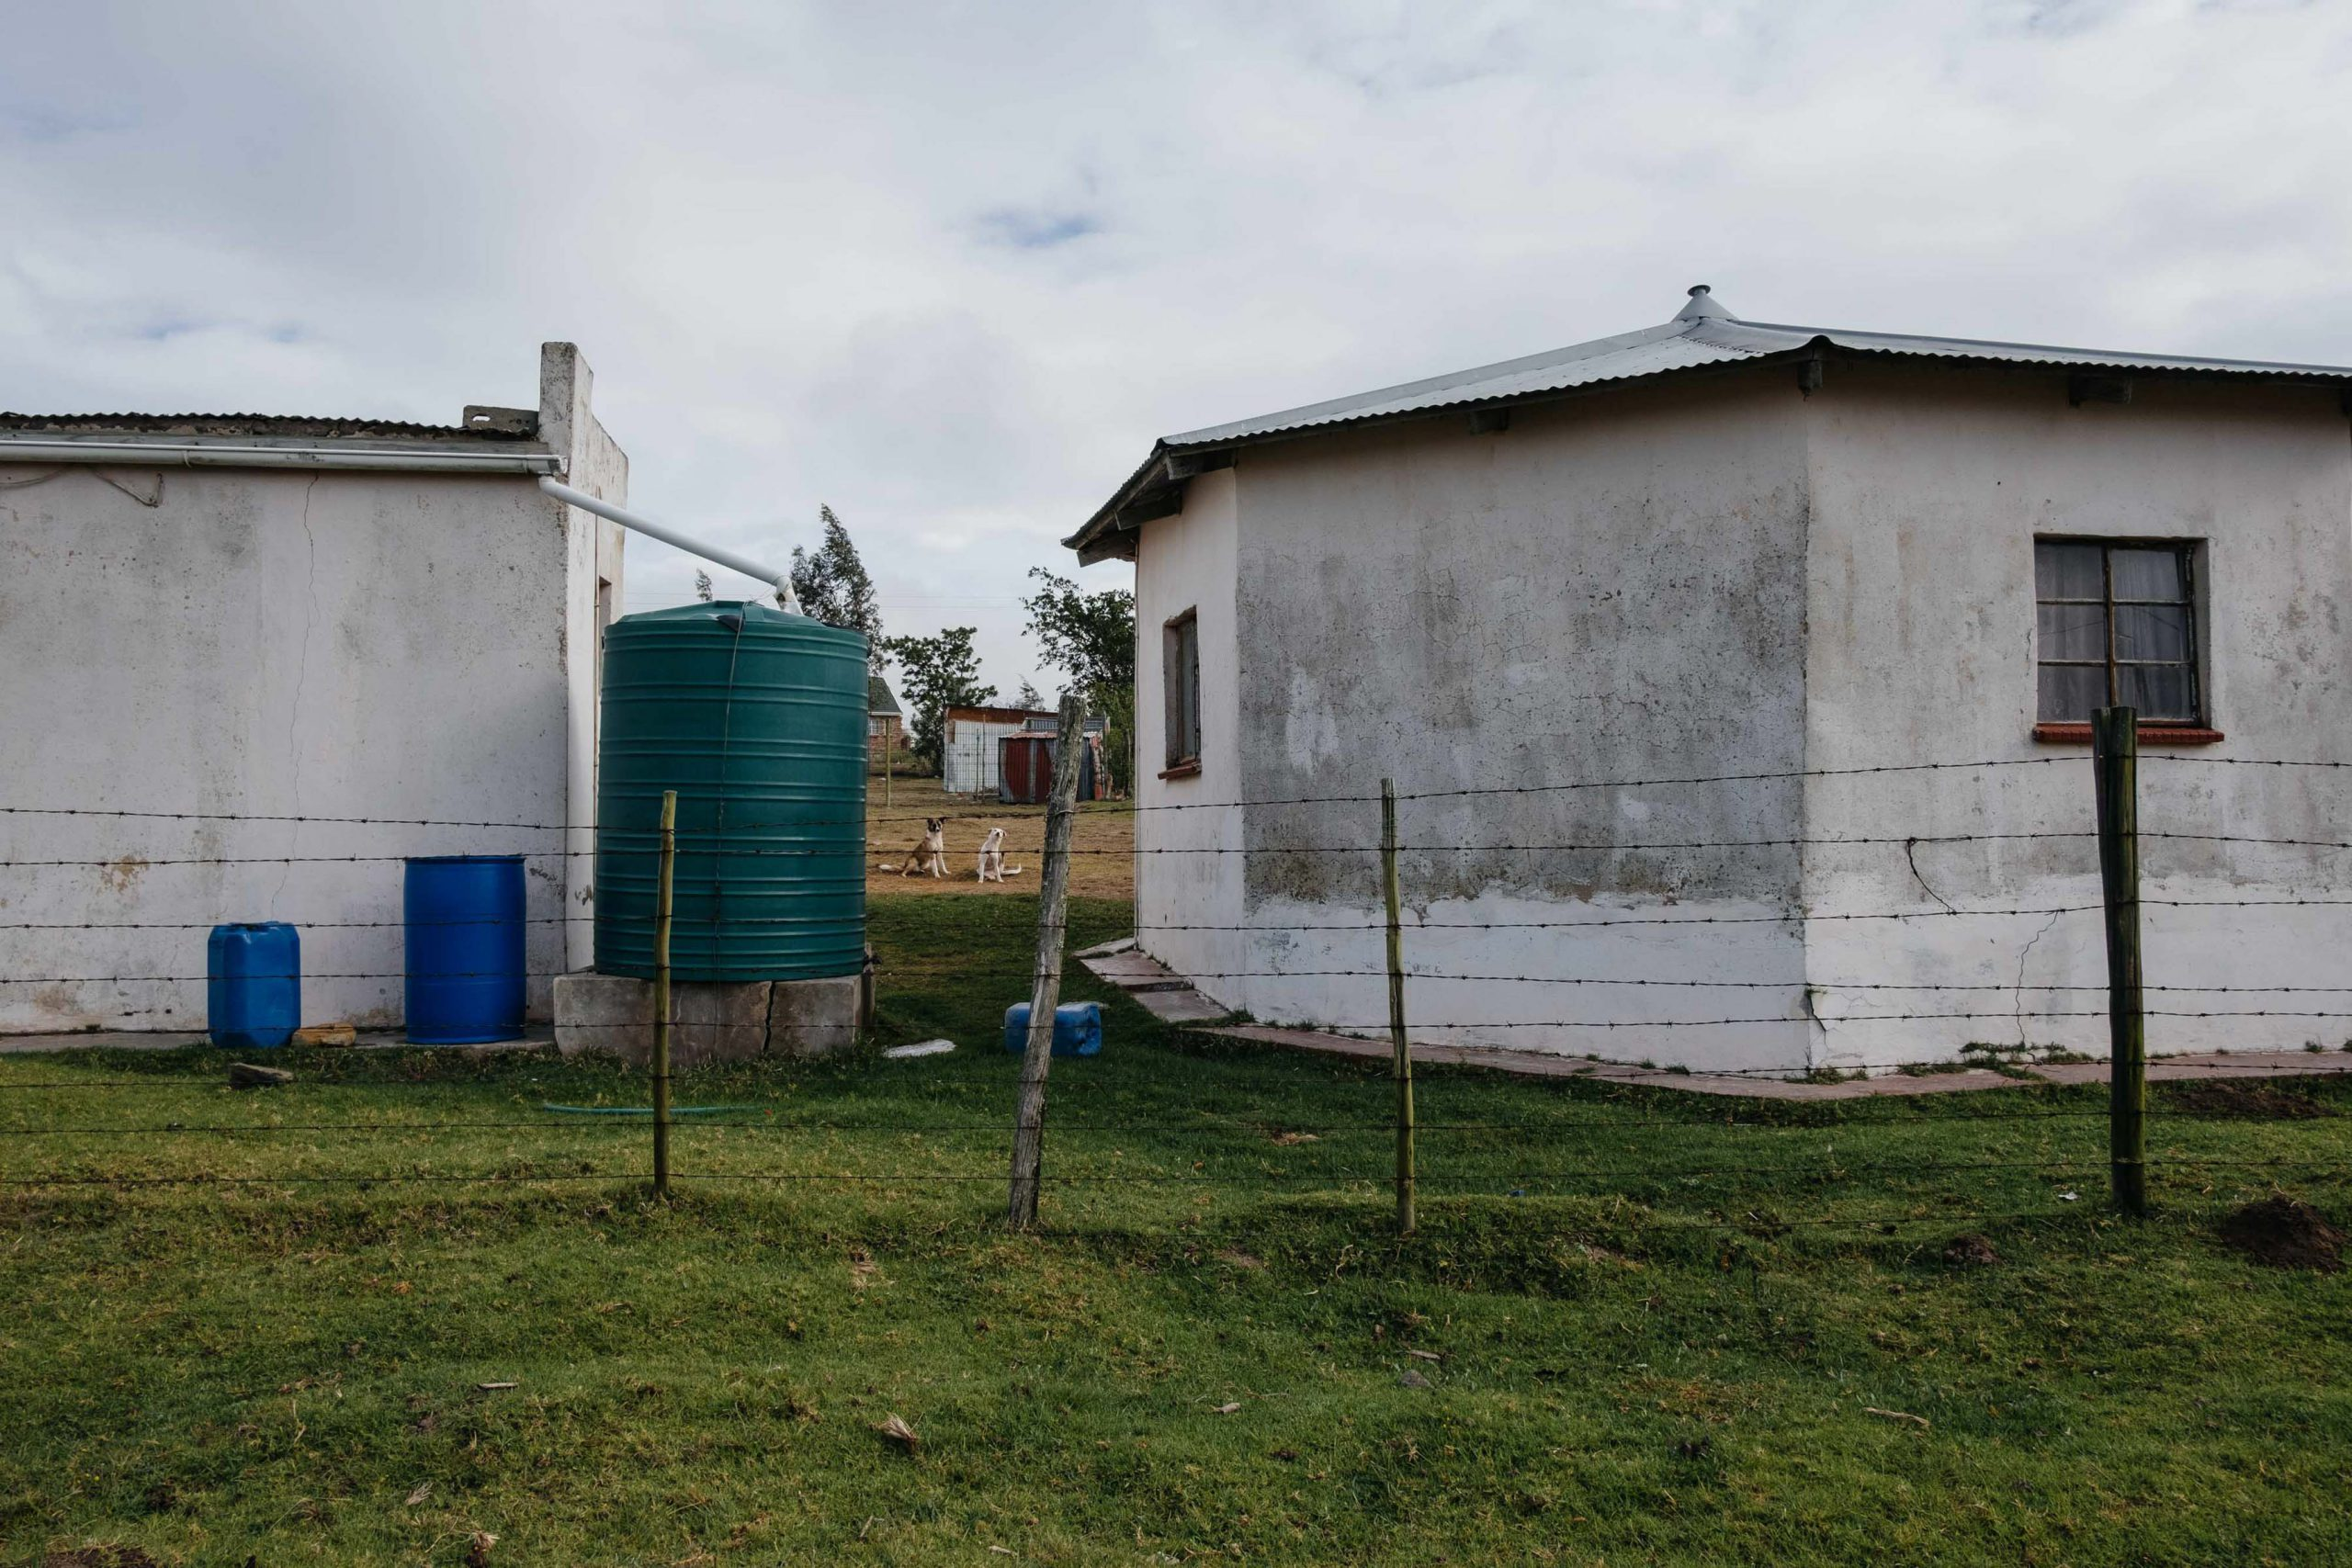 11 November 2019: A water tank designed to capture rainfall from a roof in Nqgwele Village, Ngqushwa Municipality, Eastern Cape. Rainwater harvesting is an important measure against the effects of climate change, but is often insufficient.